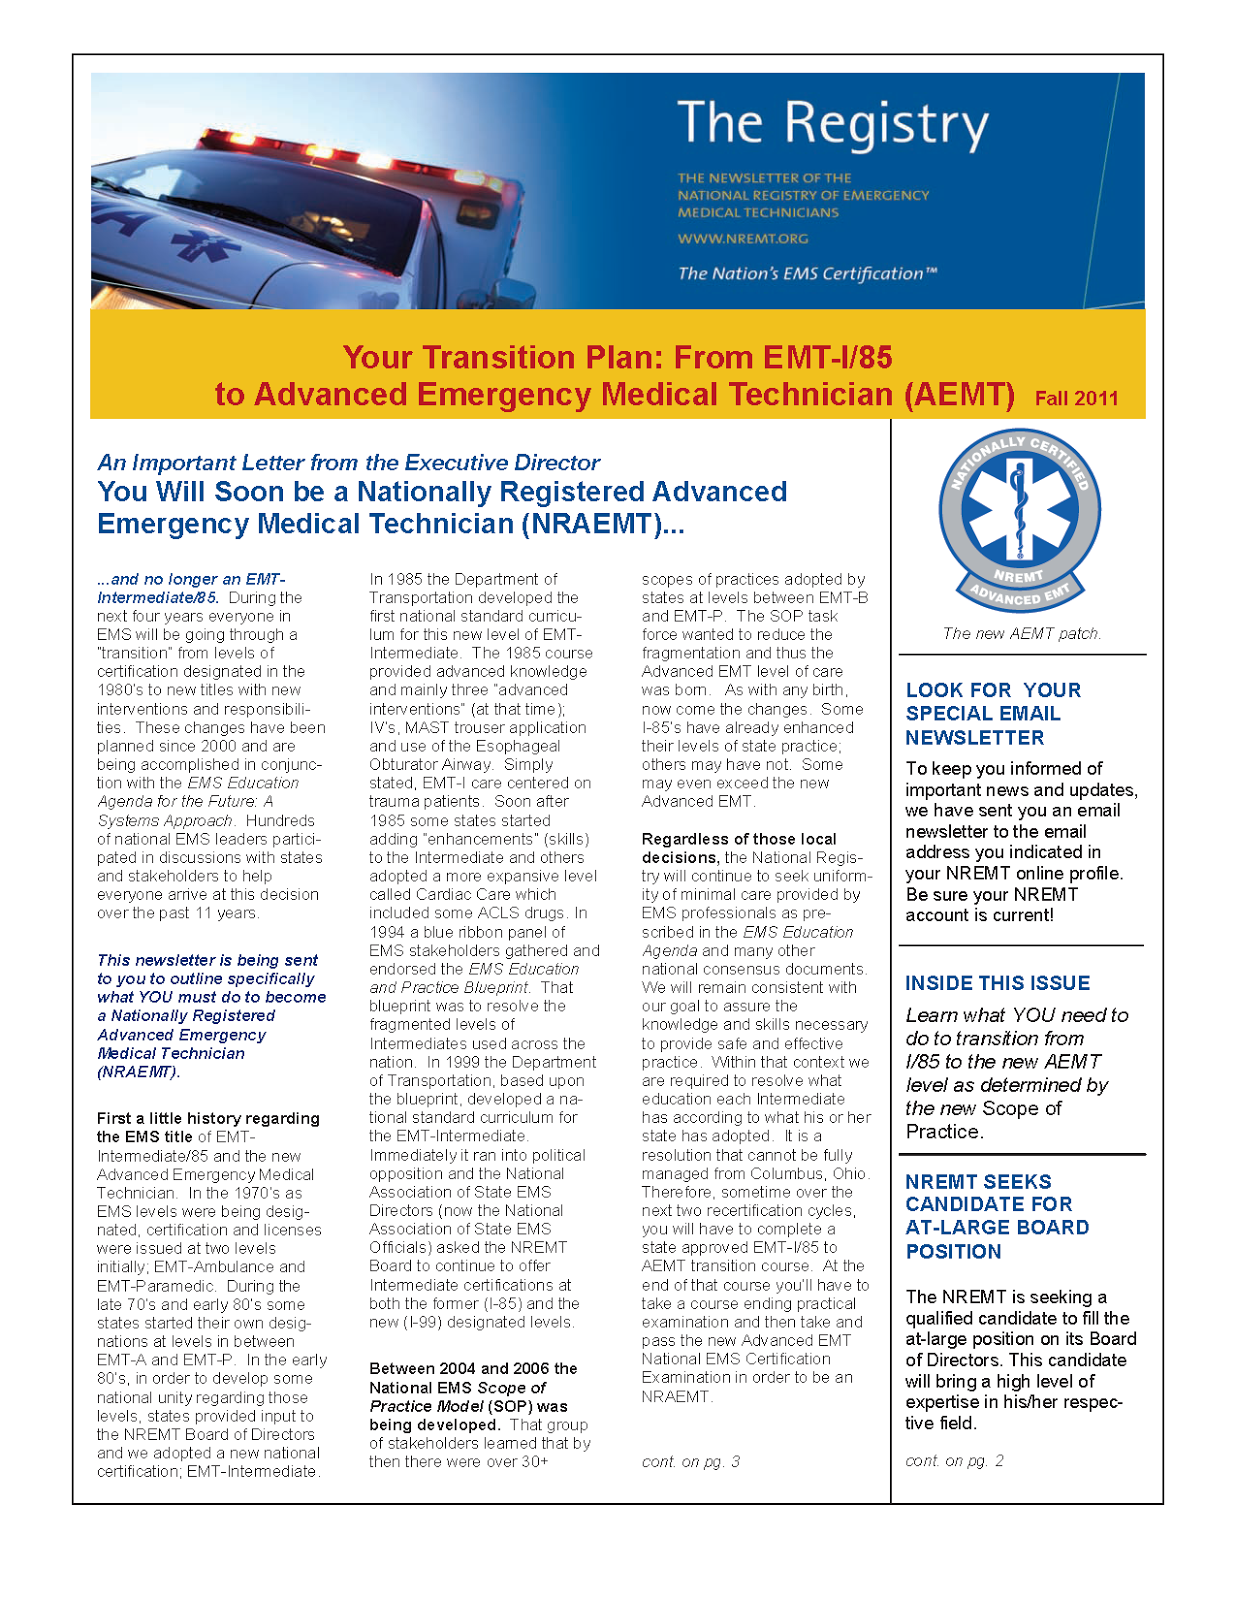 Asias emergency medical services instituteinc aems advanced in 2011 nremt released the newsletter as below this is for information purposes only xflitez Images